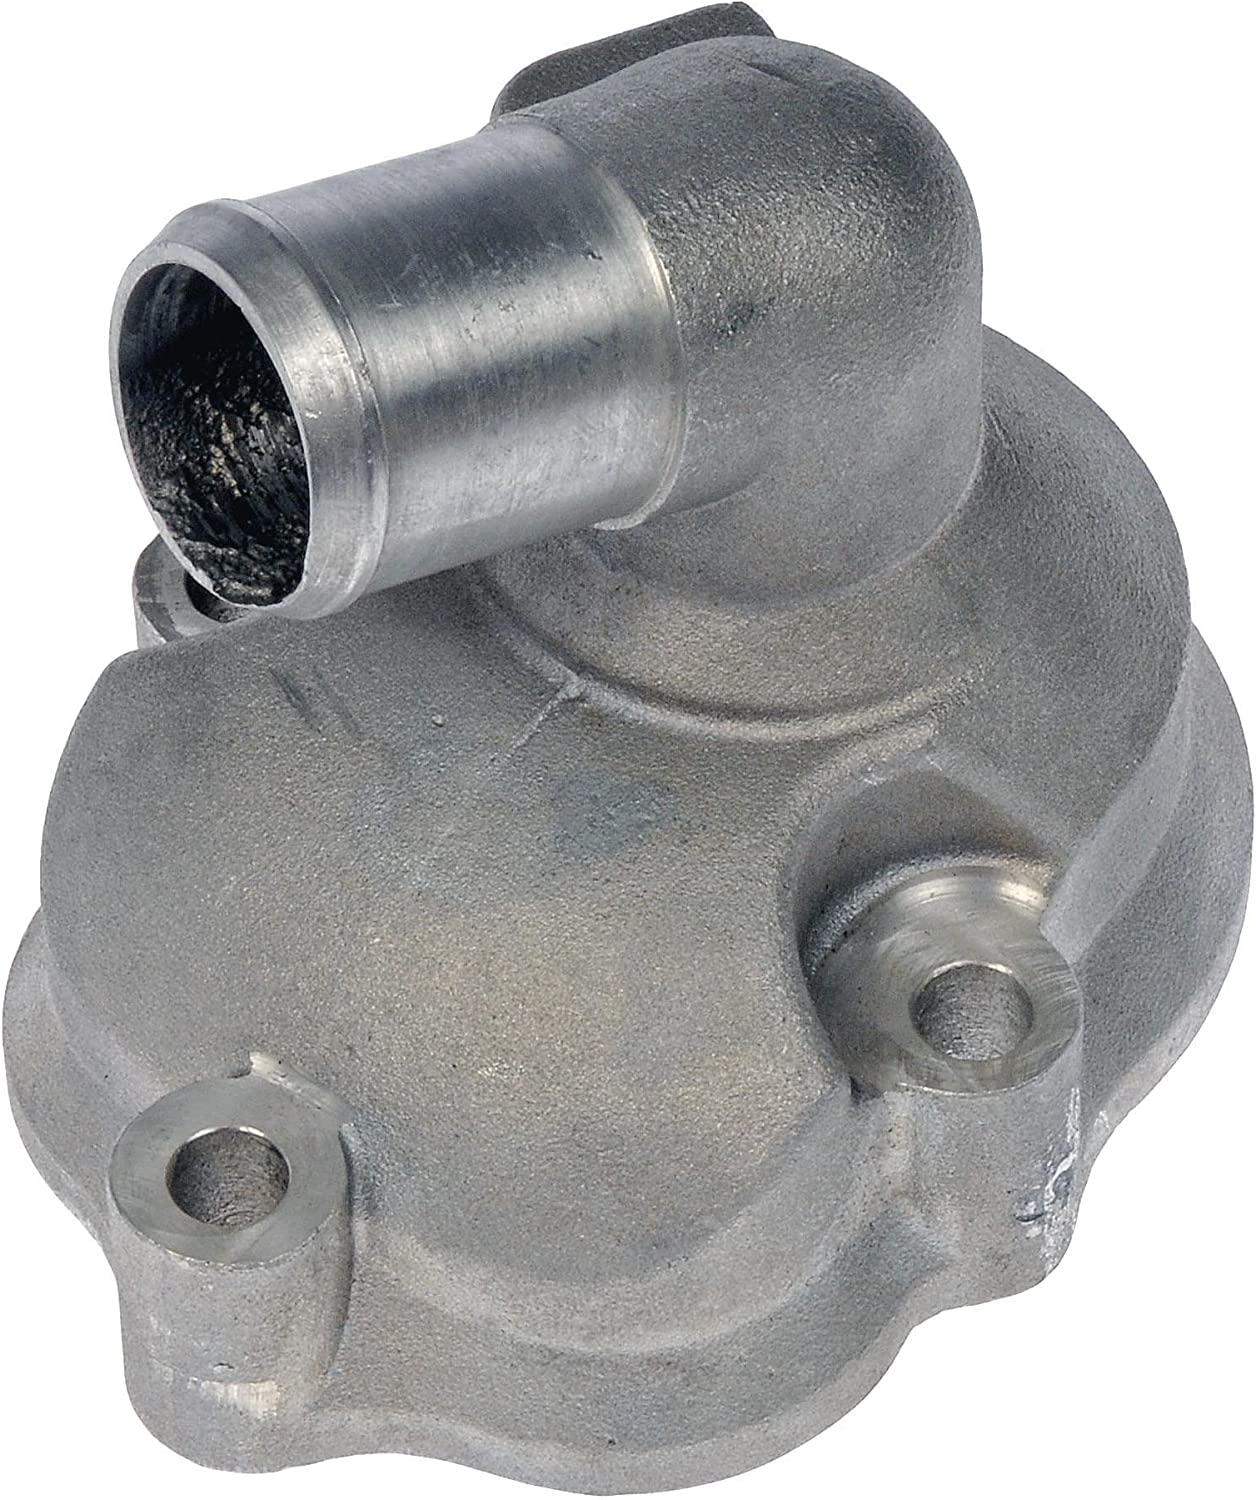 Dorman 902-5049 Engine Coolant Max 77% OFF Thermostat 25% OFF Housing